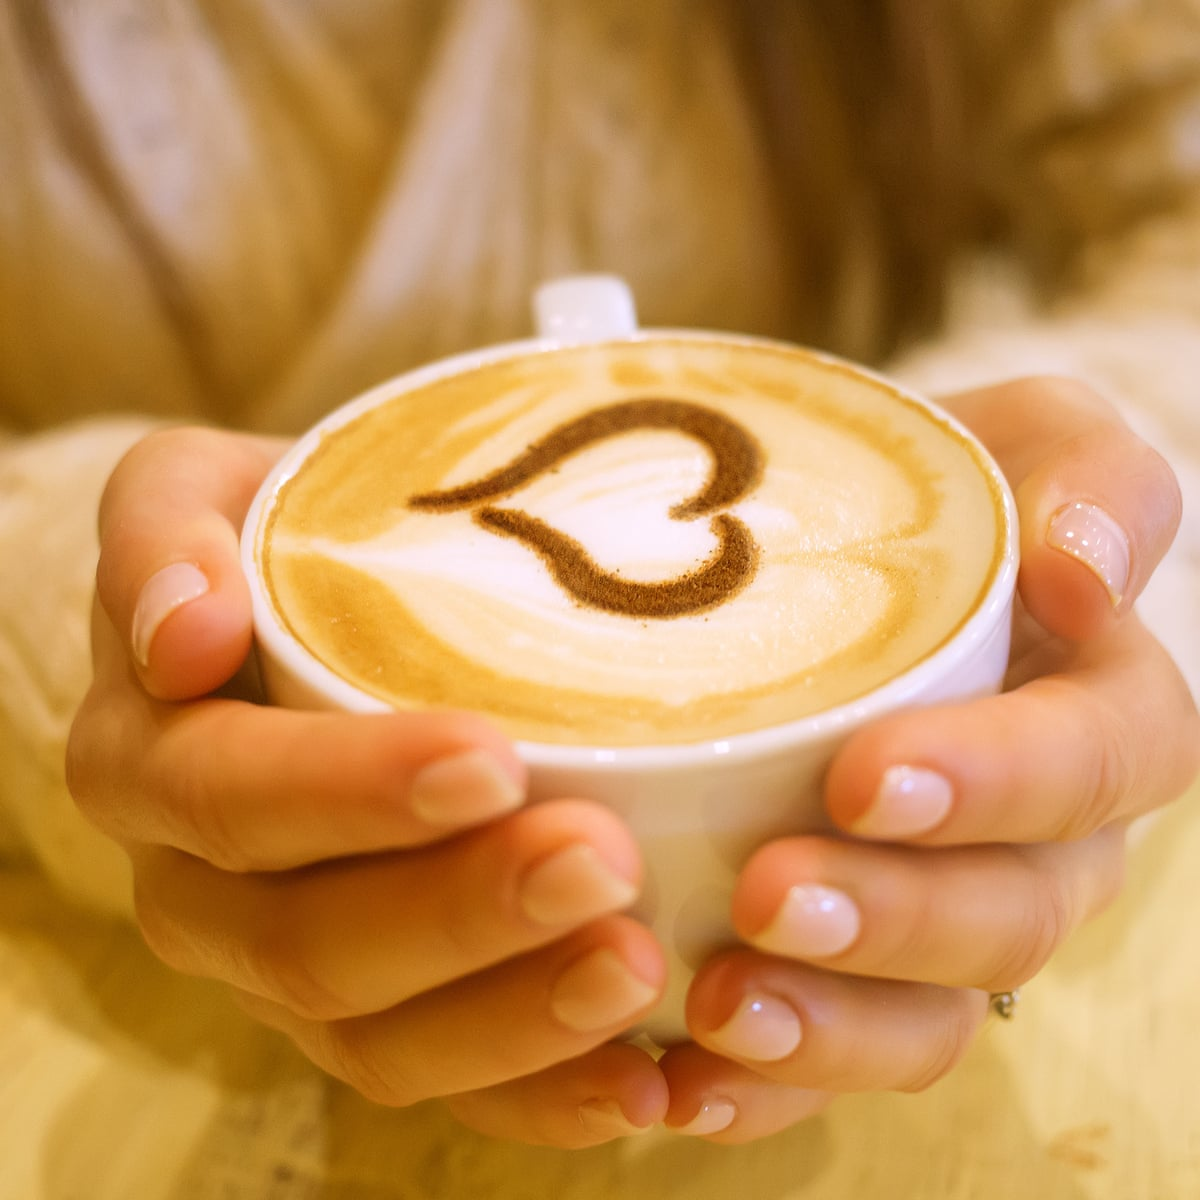 Is drinking coffee safe during your pregnancy? Get ready for some nuance |  Pregnancy | The Guardian